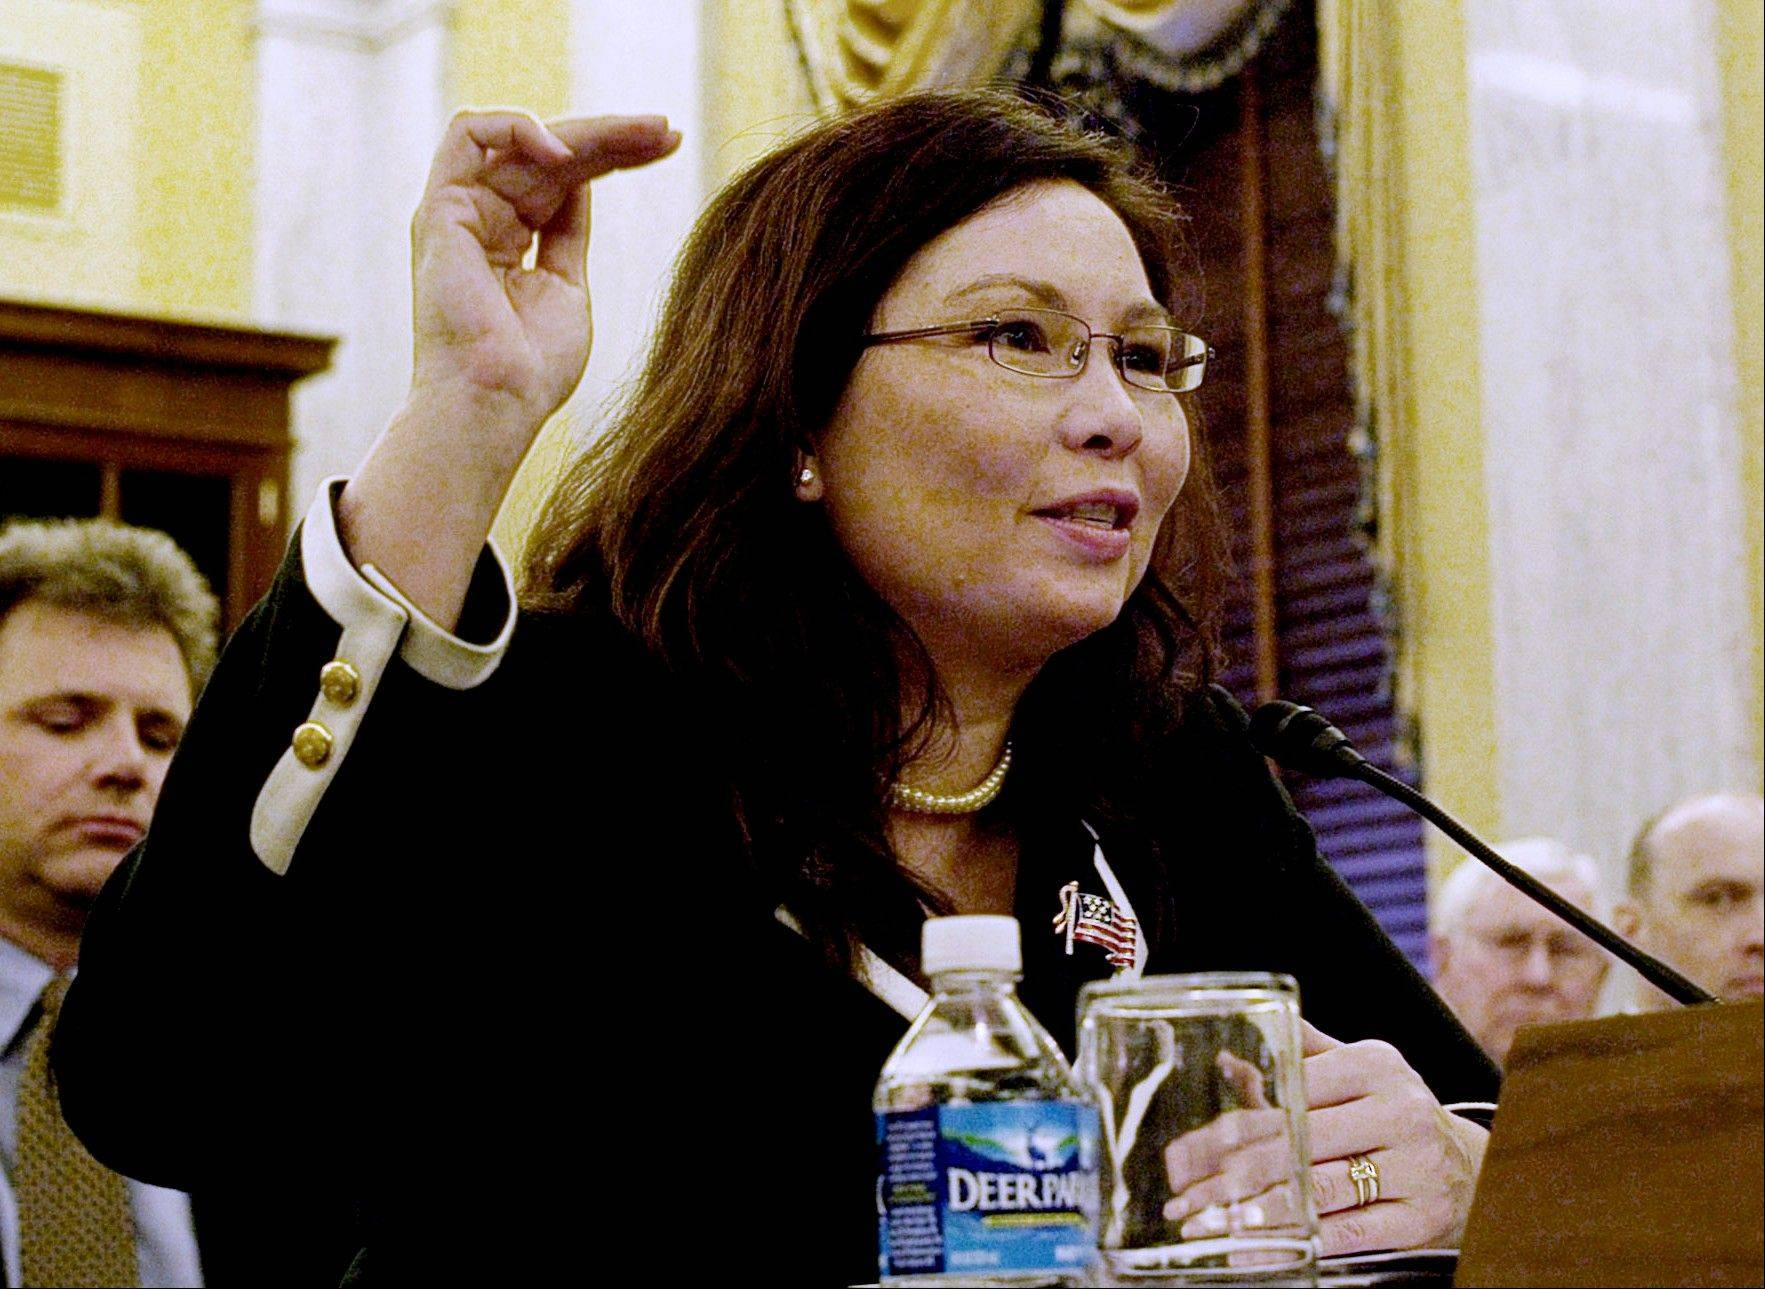 In this April 1, 2009 file photo, then-Assistant Veterans Affairs Secretary-designate Tammy Duckworth testifies on Capitol Hill in Washington. After more than a decade of wars in Iraq and Afghanistan, dozens of military veterans -- Republicans and Democrats -- are running for Congress this election year as voters have shown a fresh enthusiasm for candidates with no elected experience.